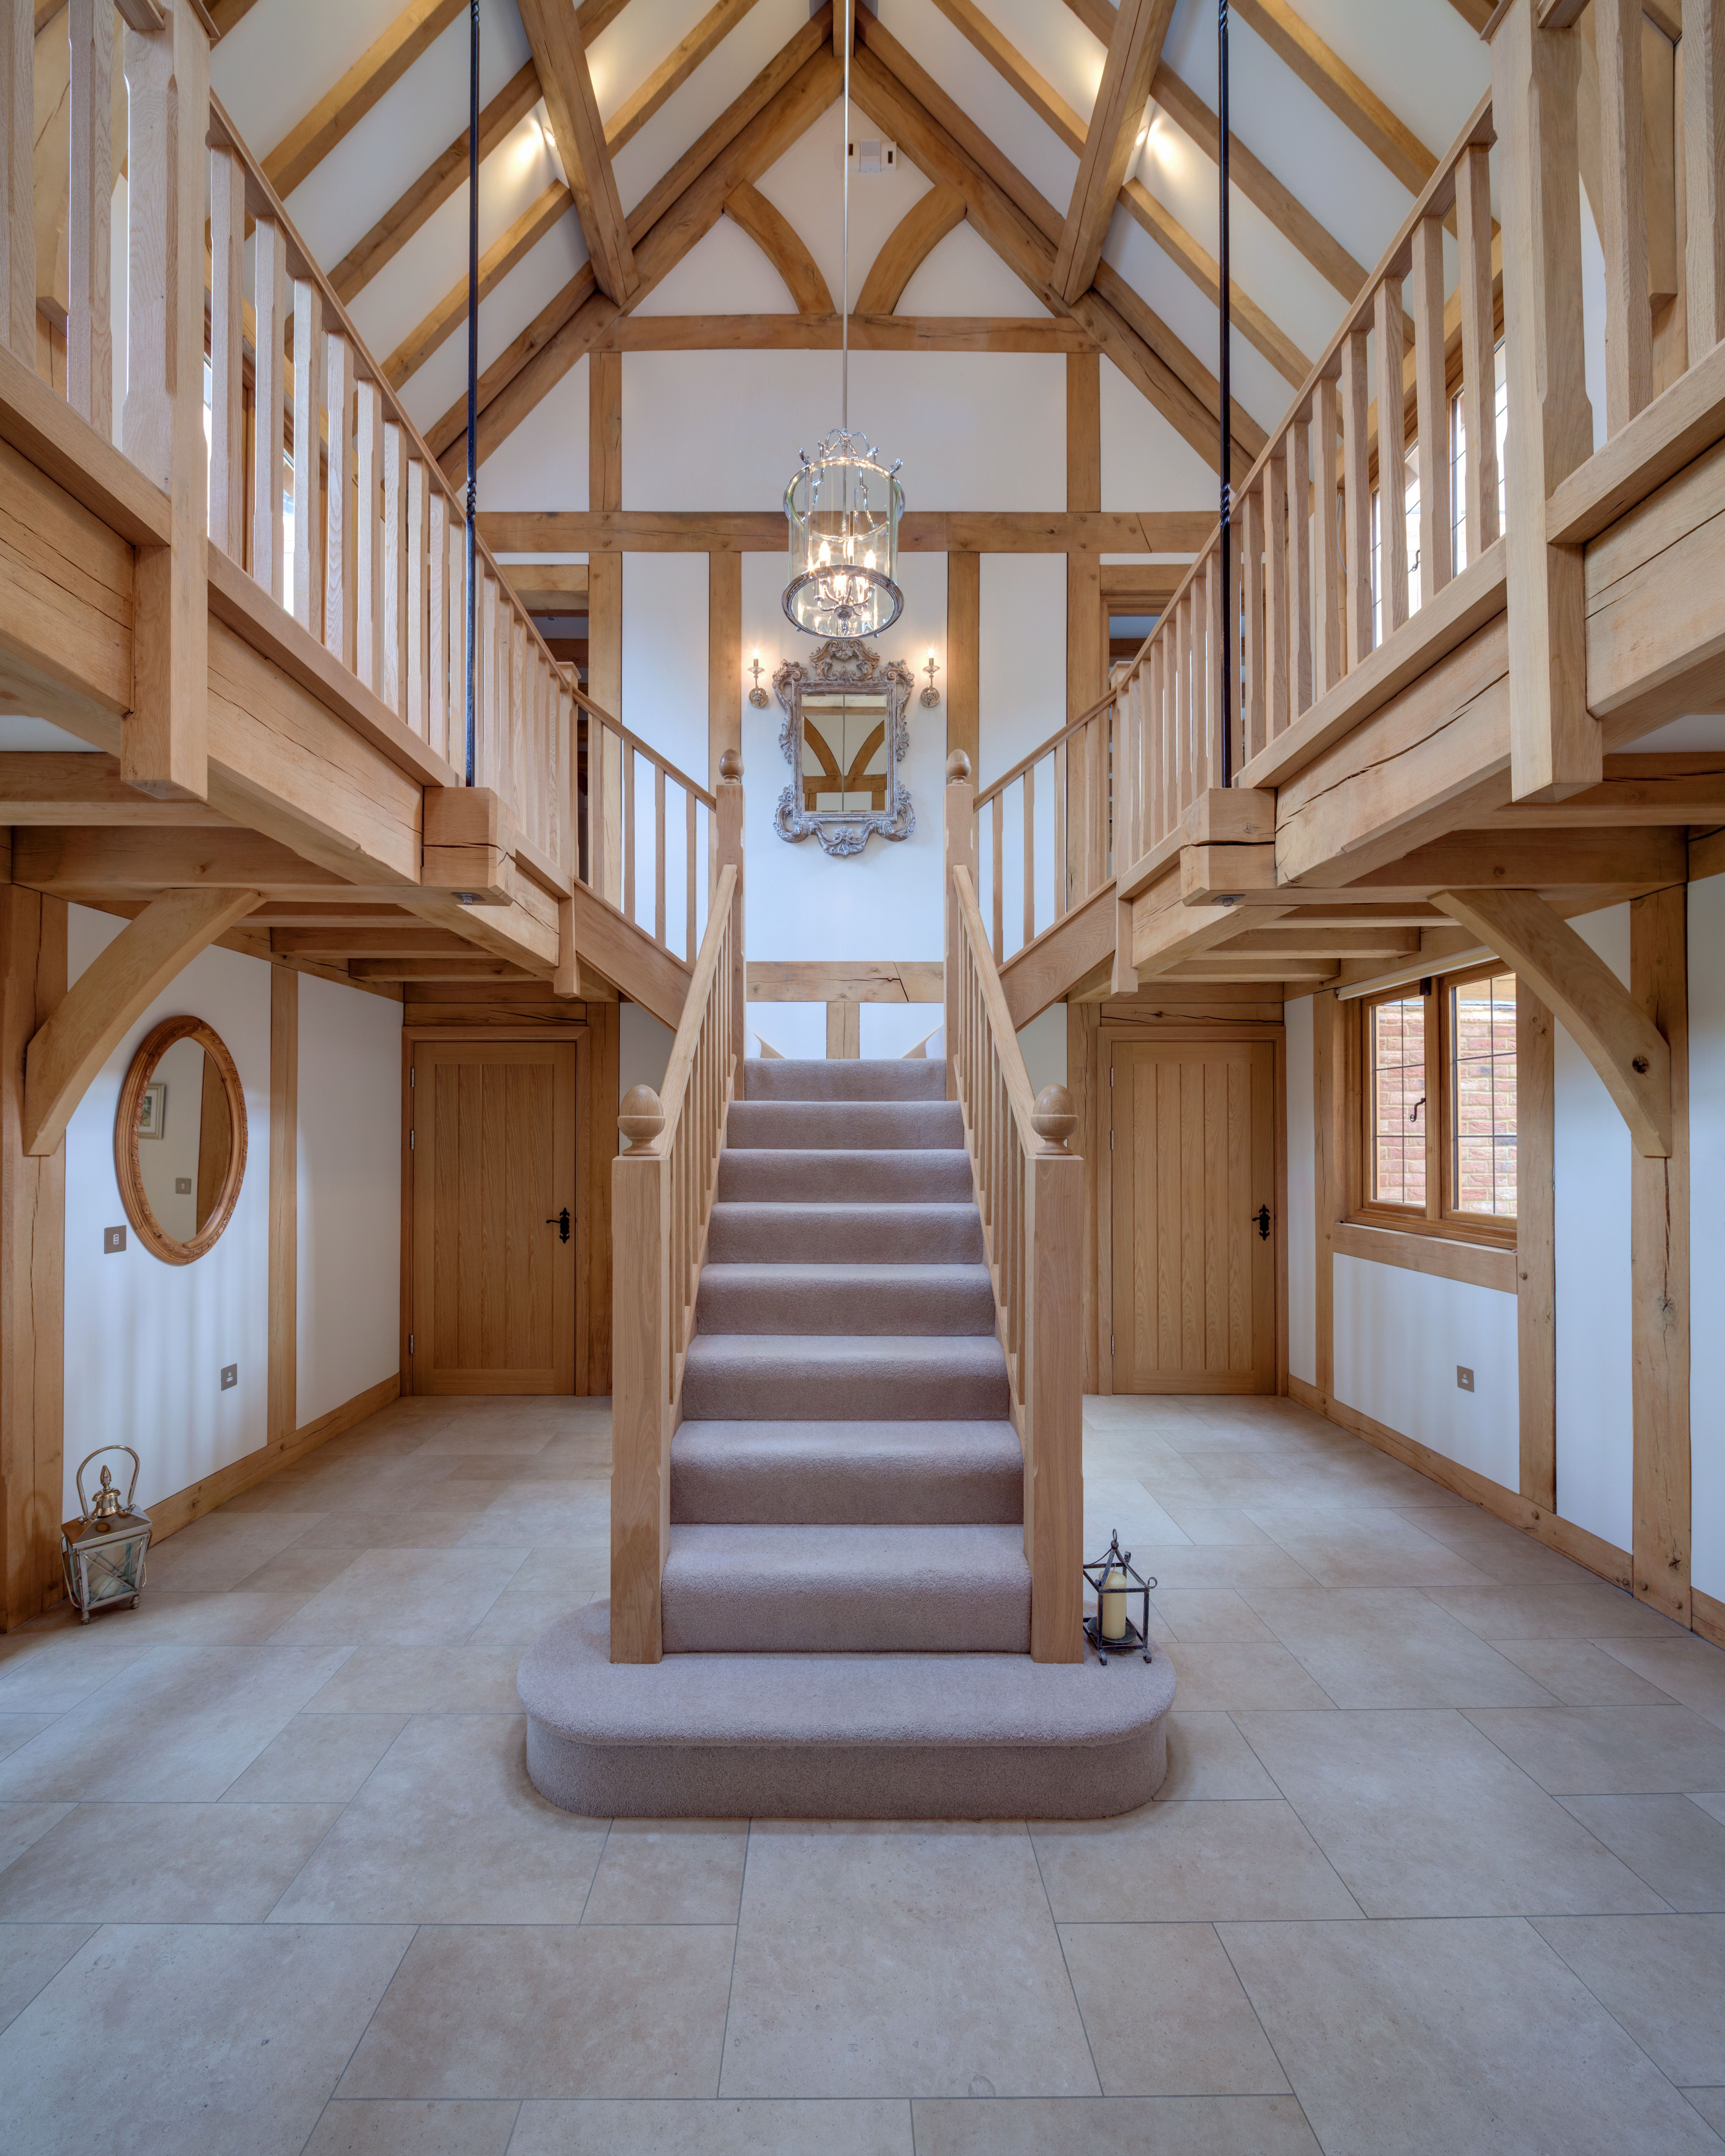 A welsh Oak Frame house with a light and airy oak hallway with